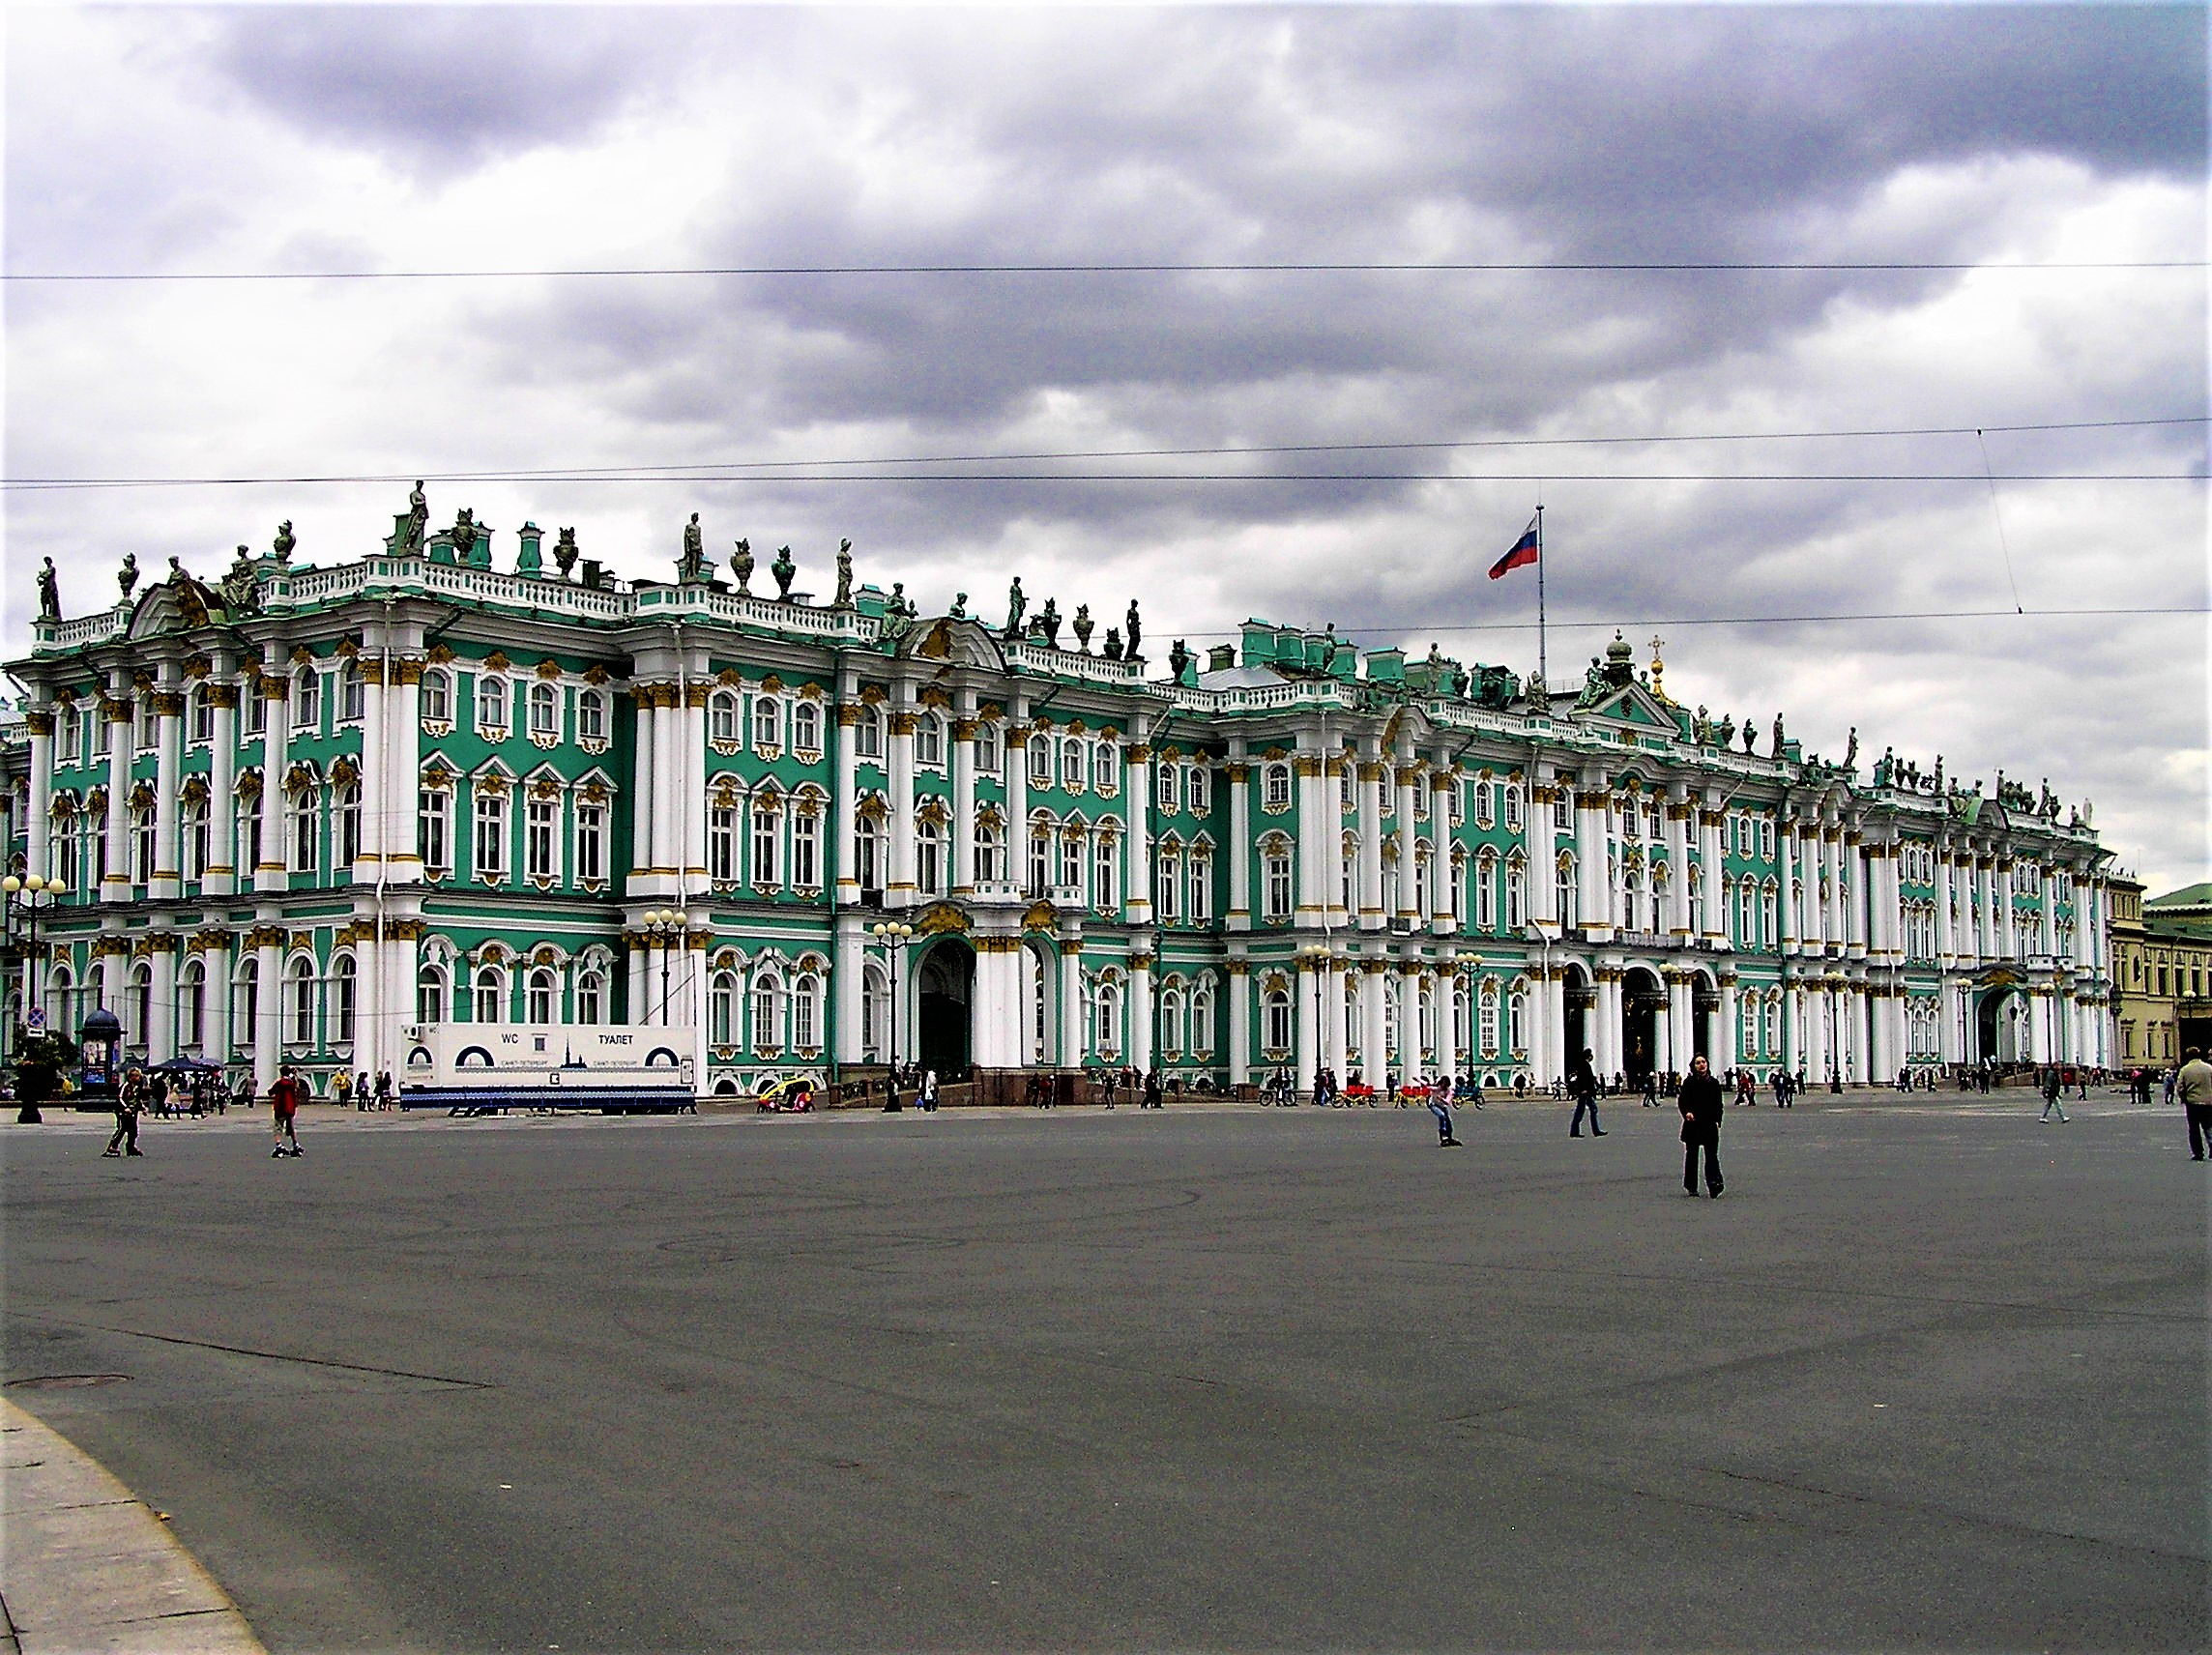 The State Hermitage, aka the Winter Palace